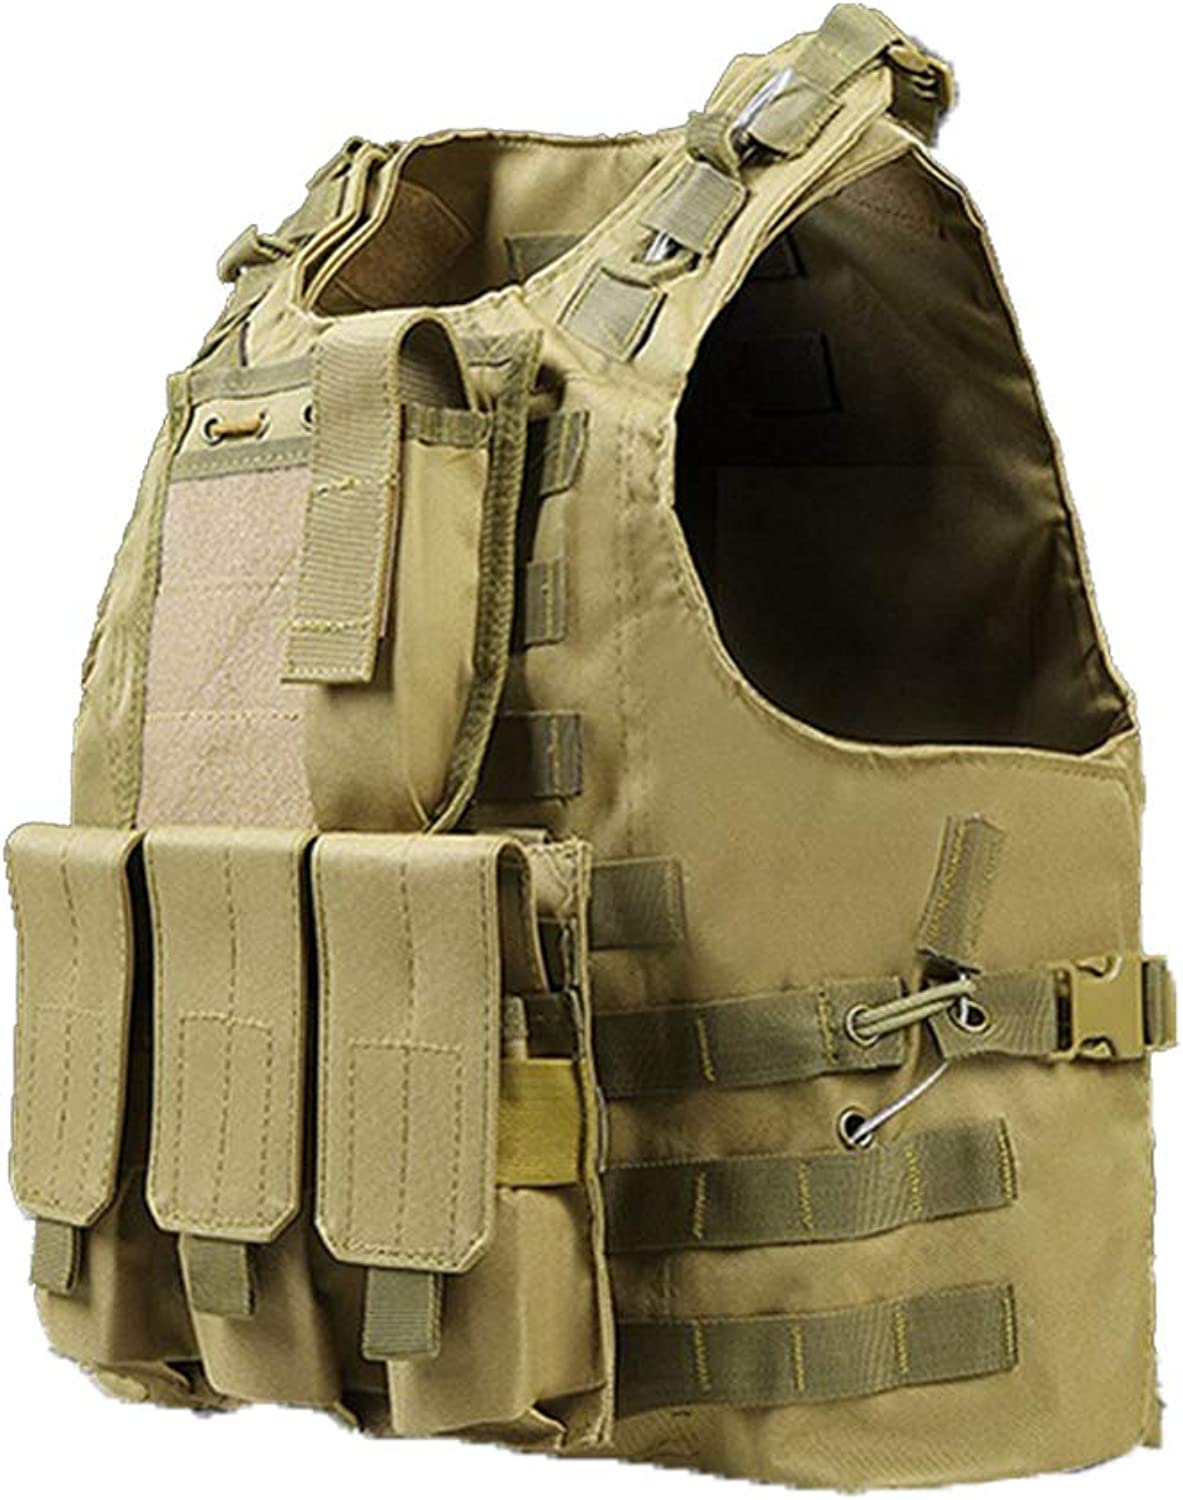 ZIXUN Tactical Vest Adjustable Paintball Breathable Tactical Combat Training Vest for Outdoor Hunting, Army Fans, CS Game, Survival Game